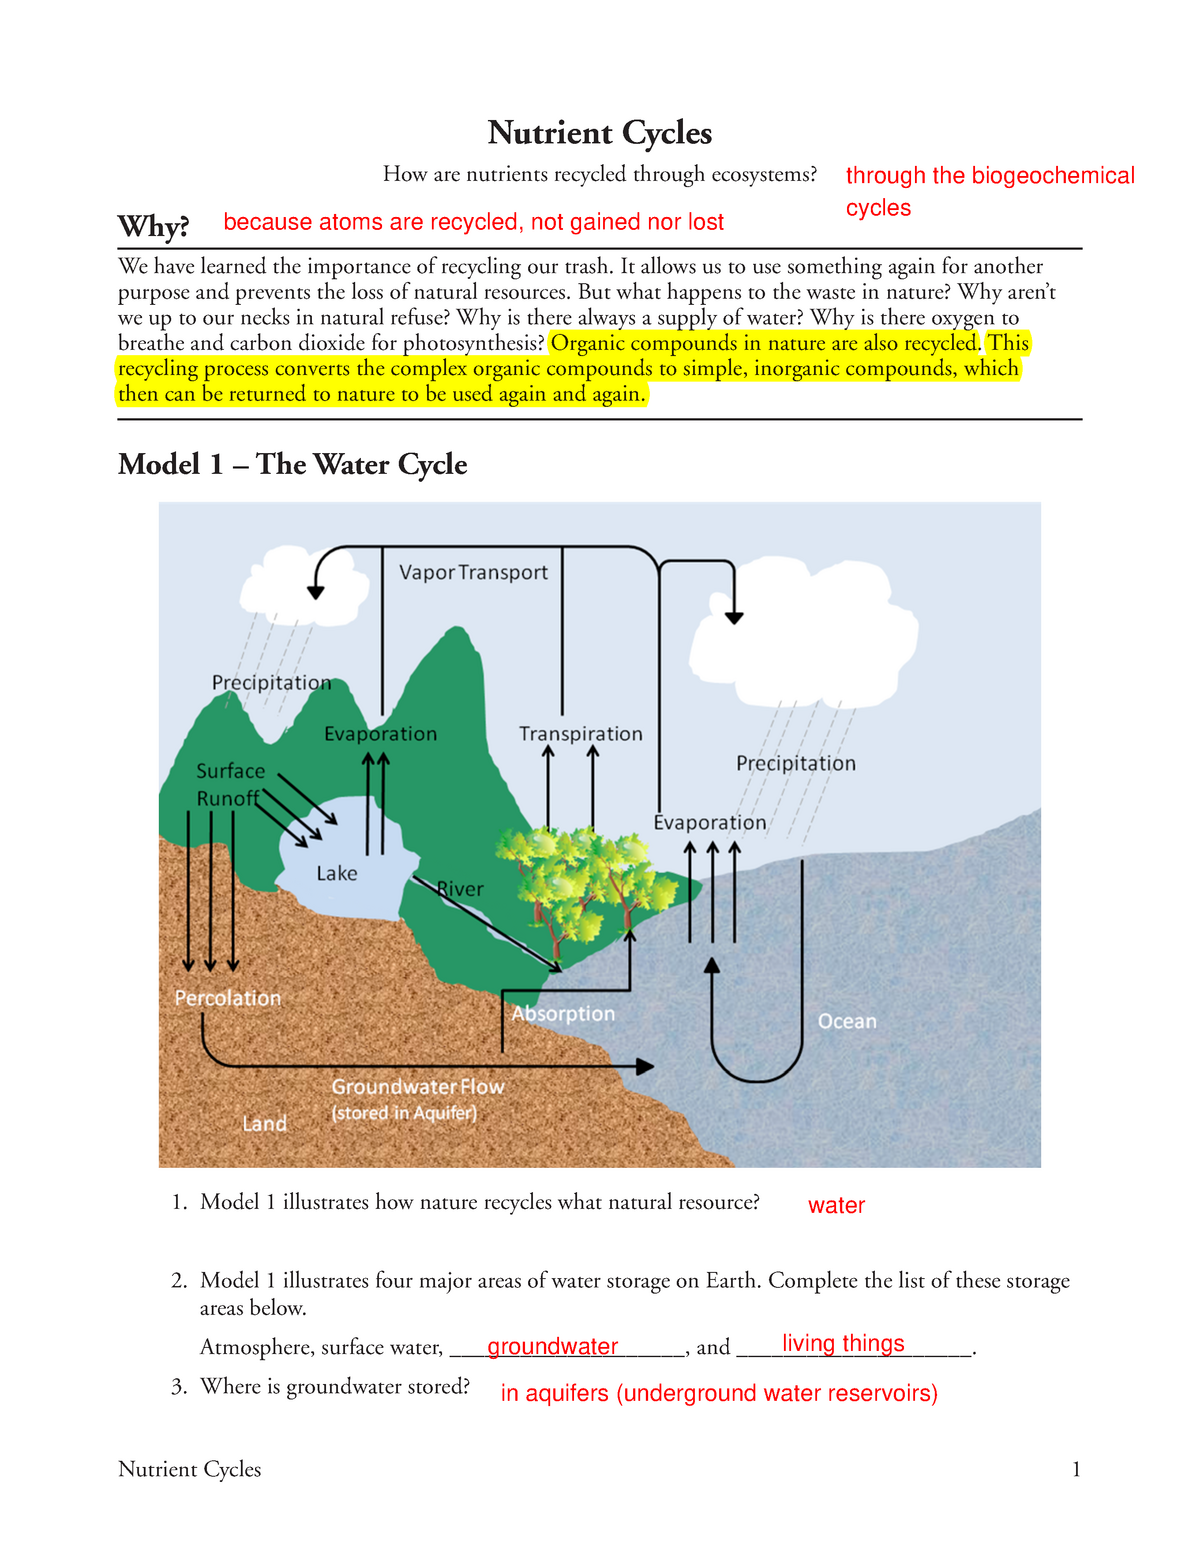 Nutrient Cycles Pogil Assignment - social physcology - StuDocu Within Nutrient Cycles Worksheet Answers